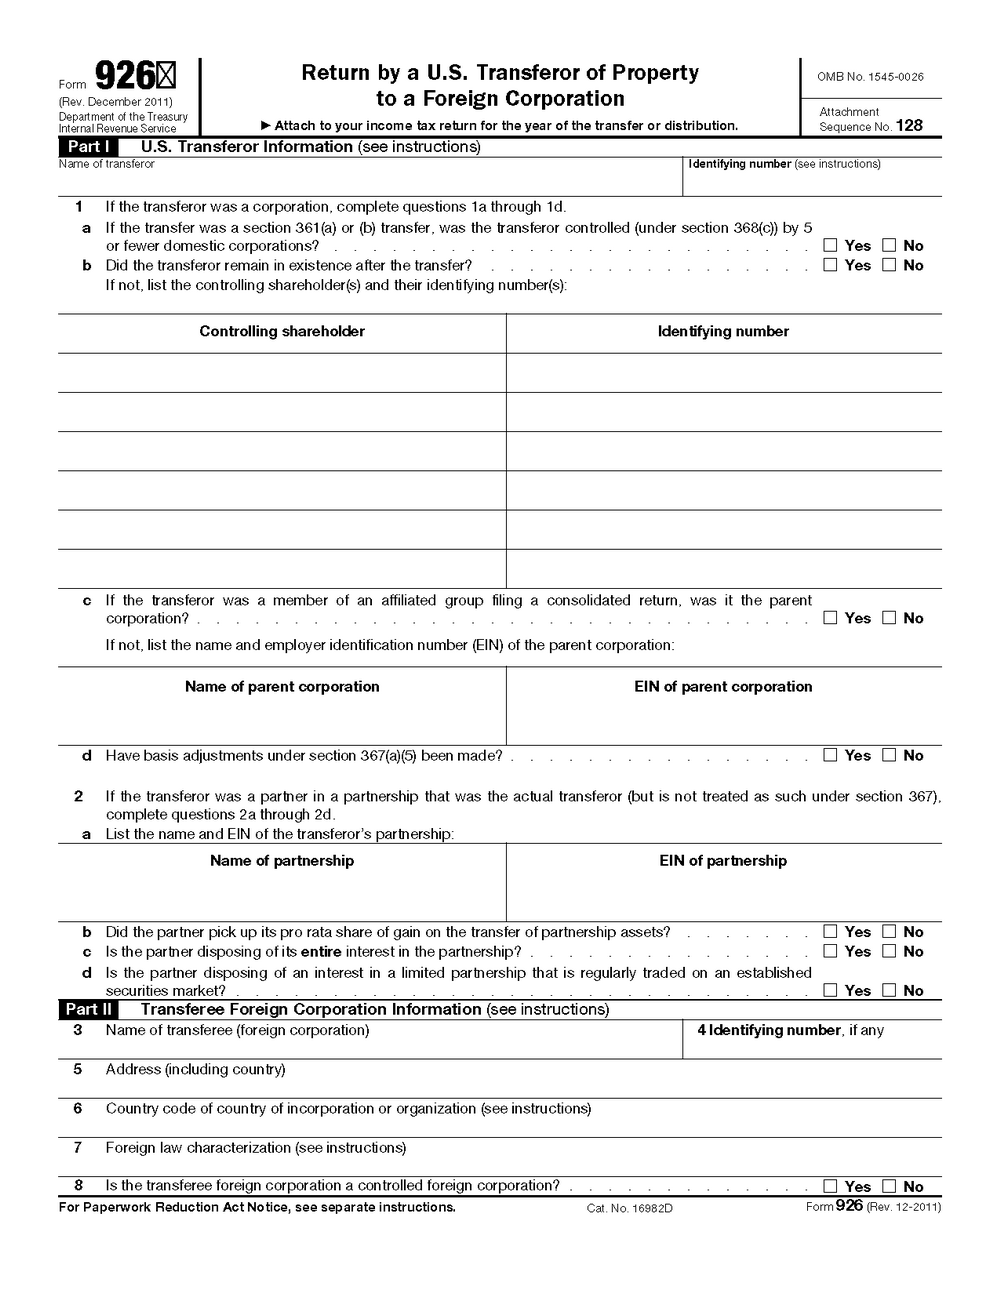 E File Tax Form 7004